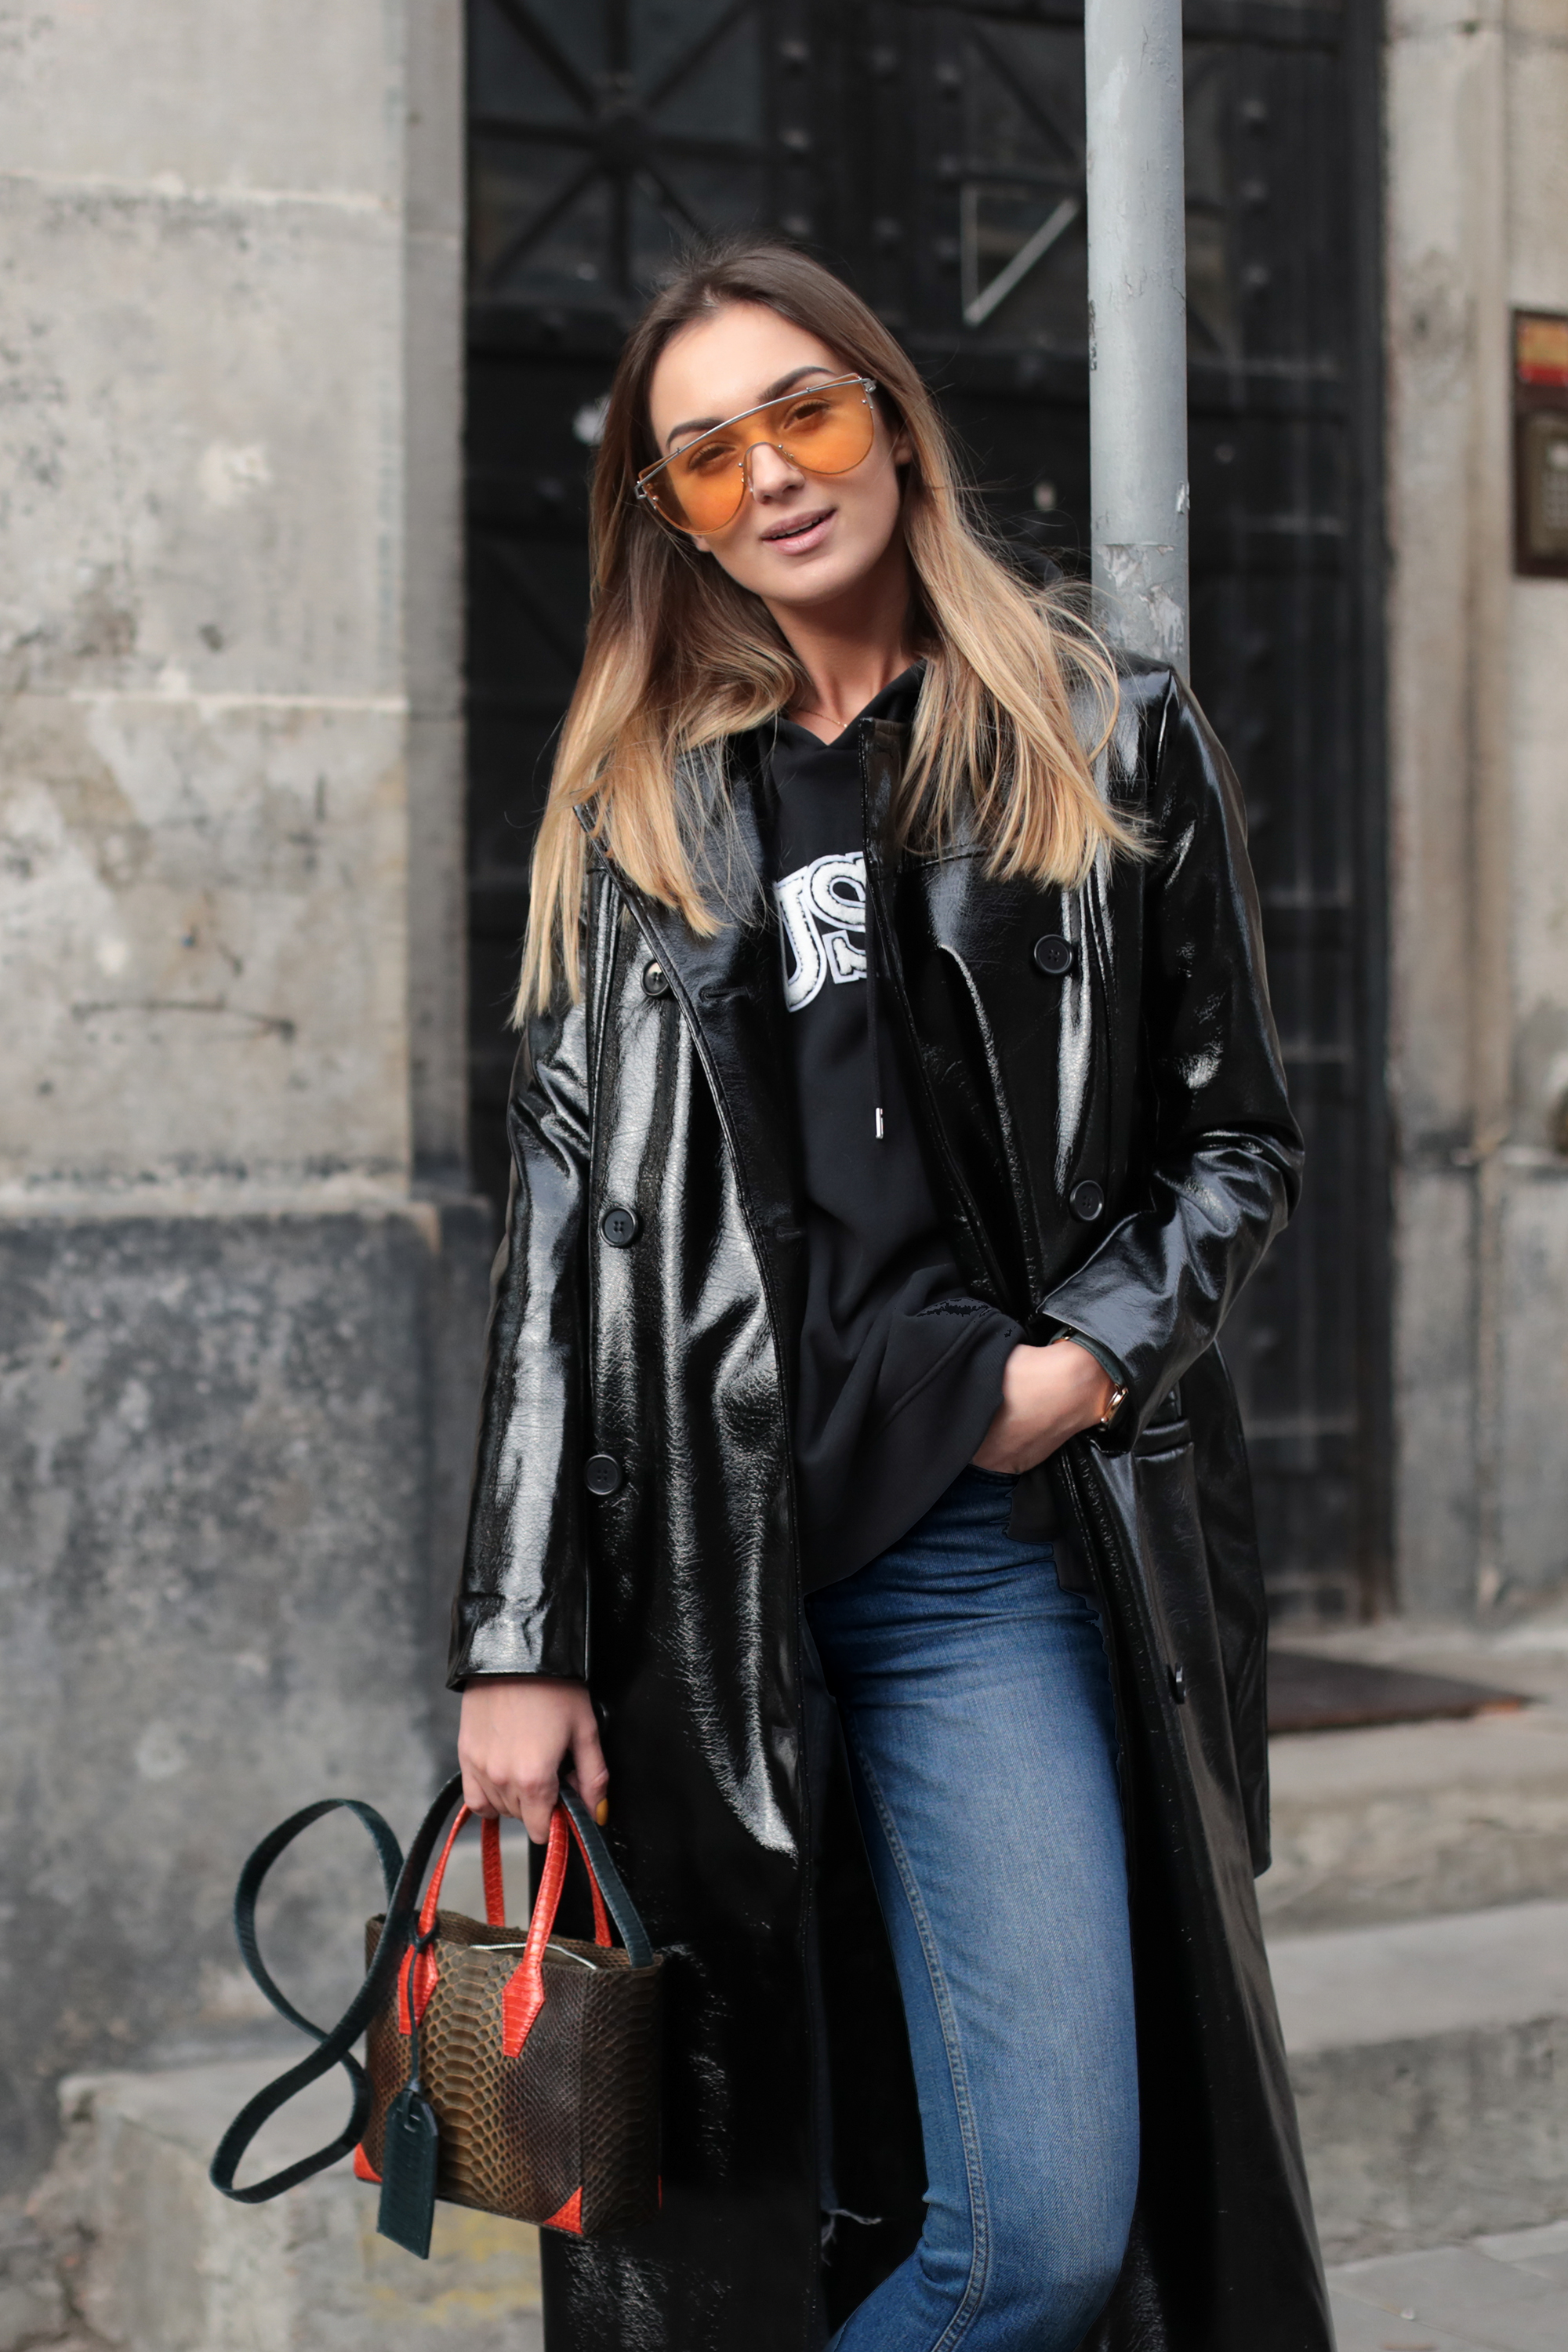 fashion-blogger-orange-sunglaasses-street-style